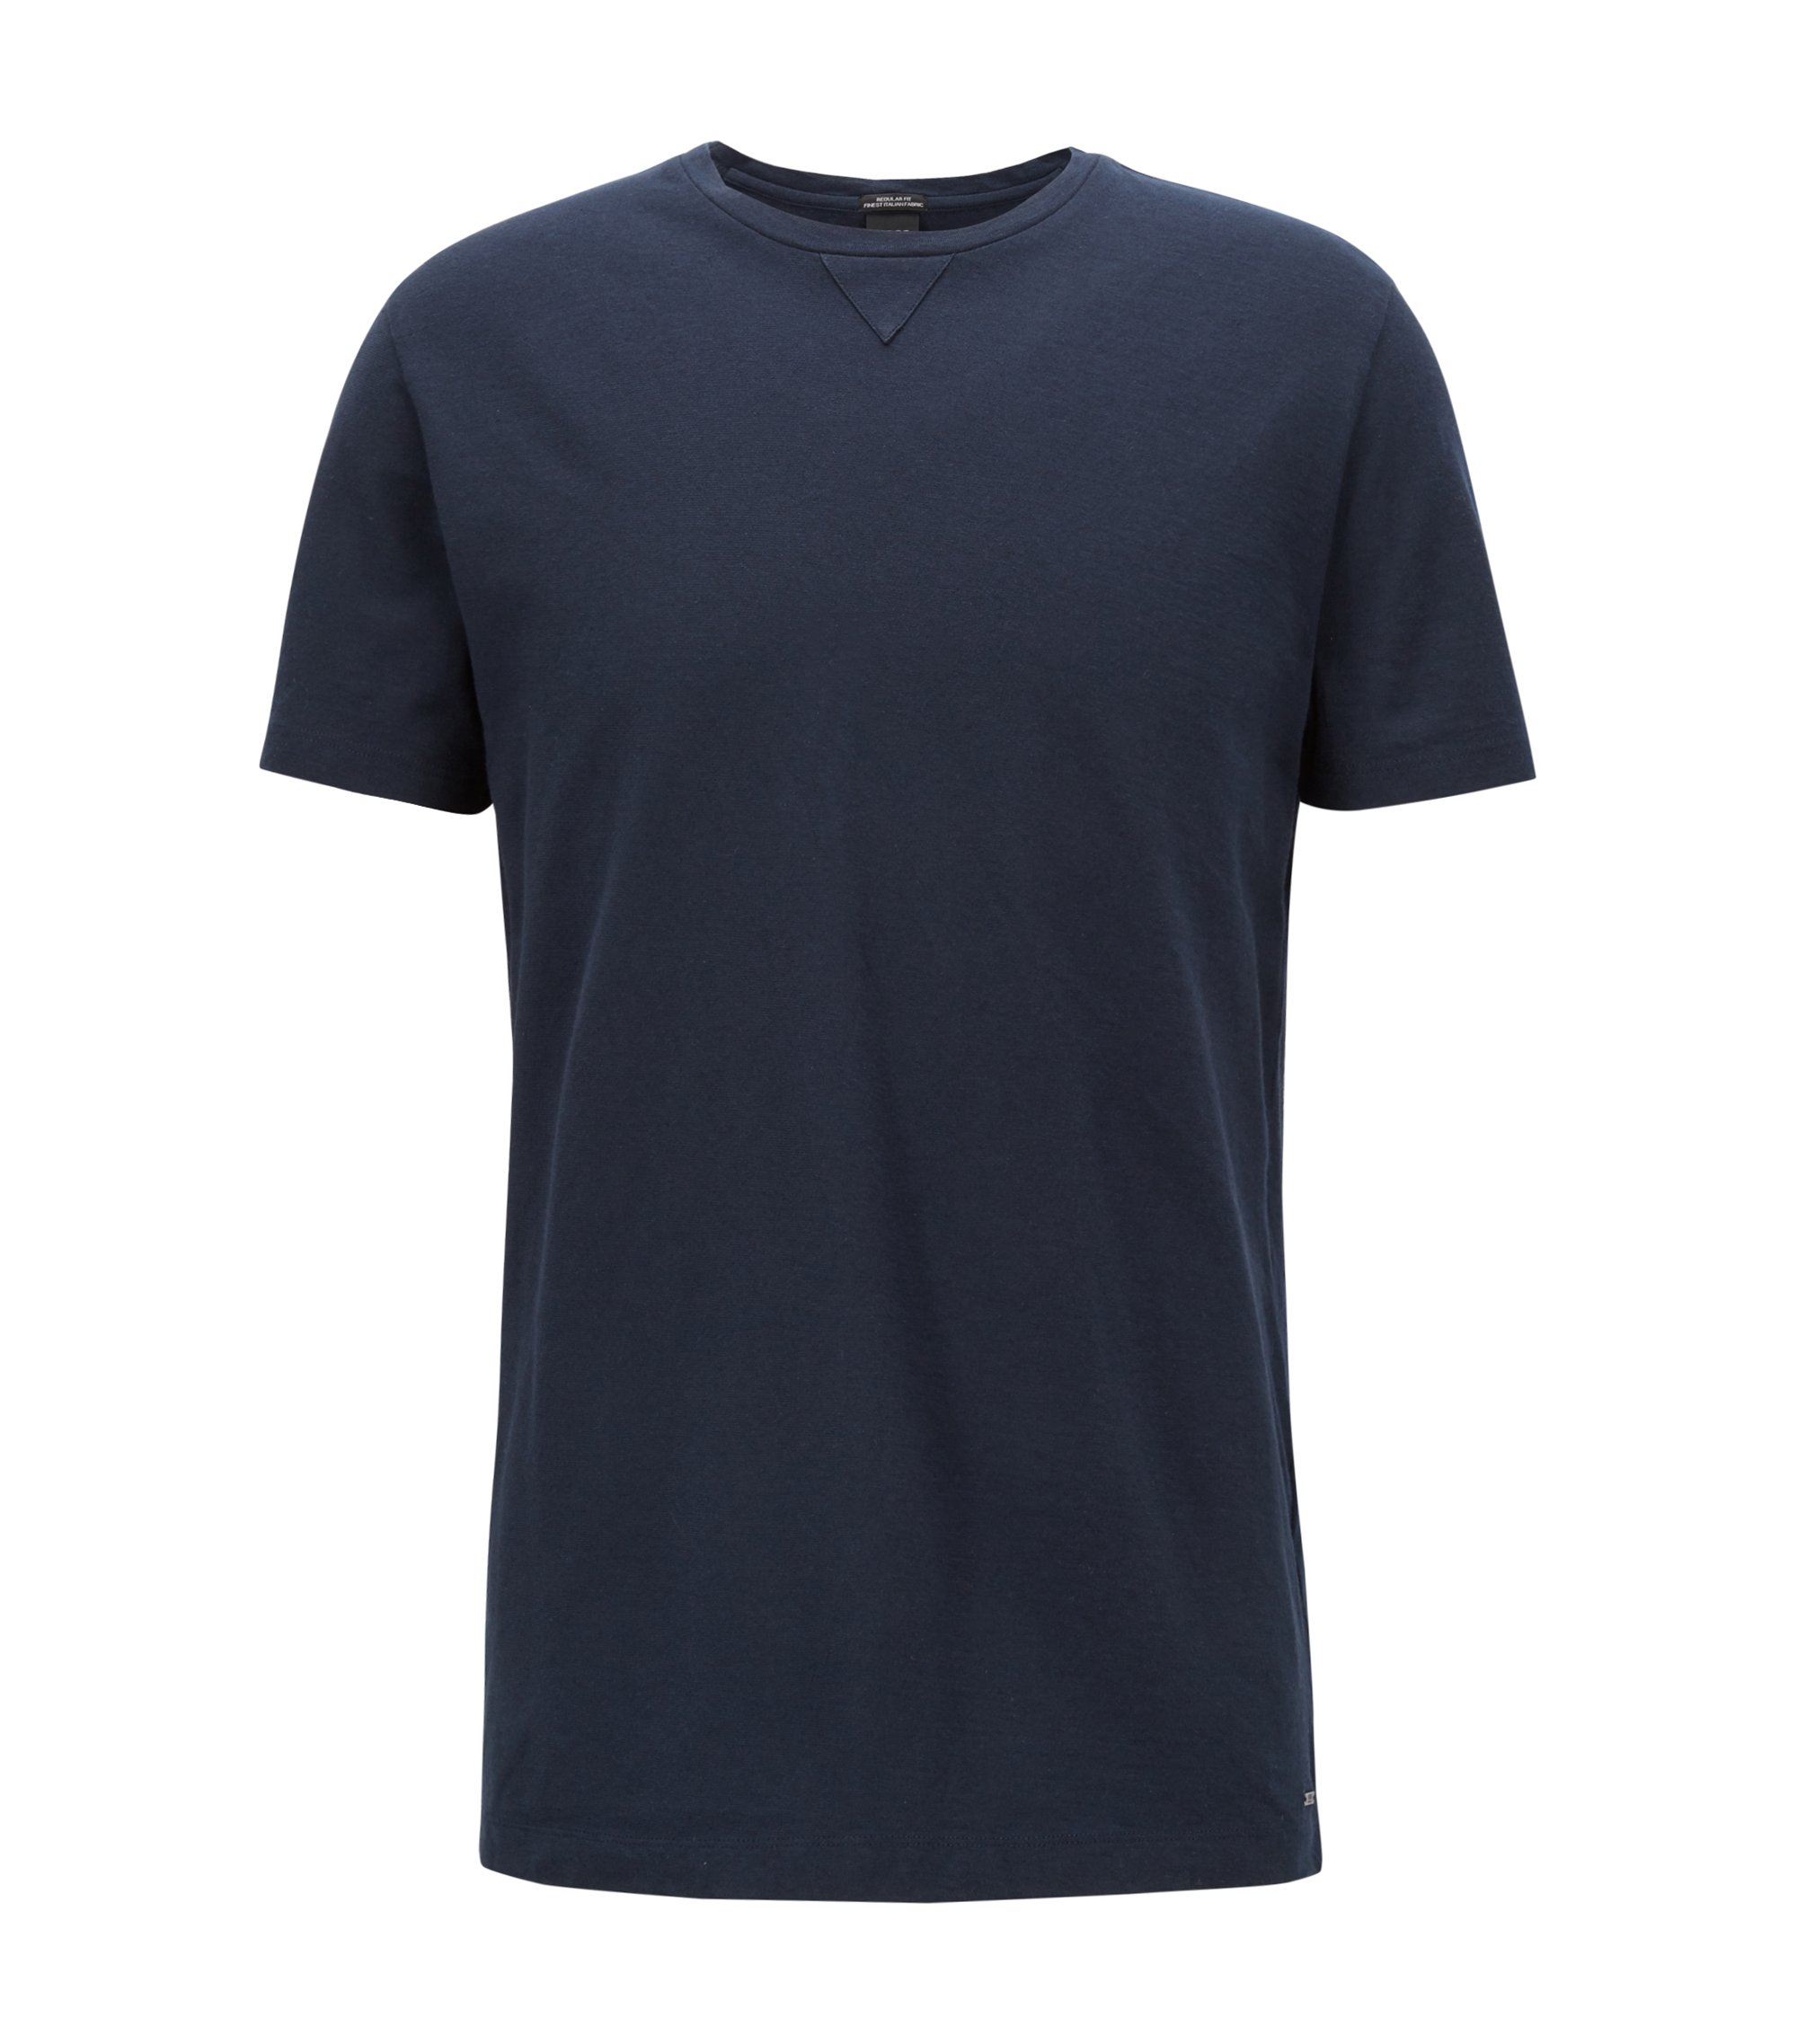 Crew-neck T-shirt in an Italian cotton blend, Dark Blue